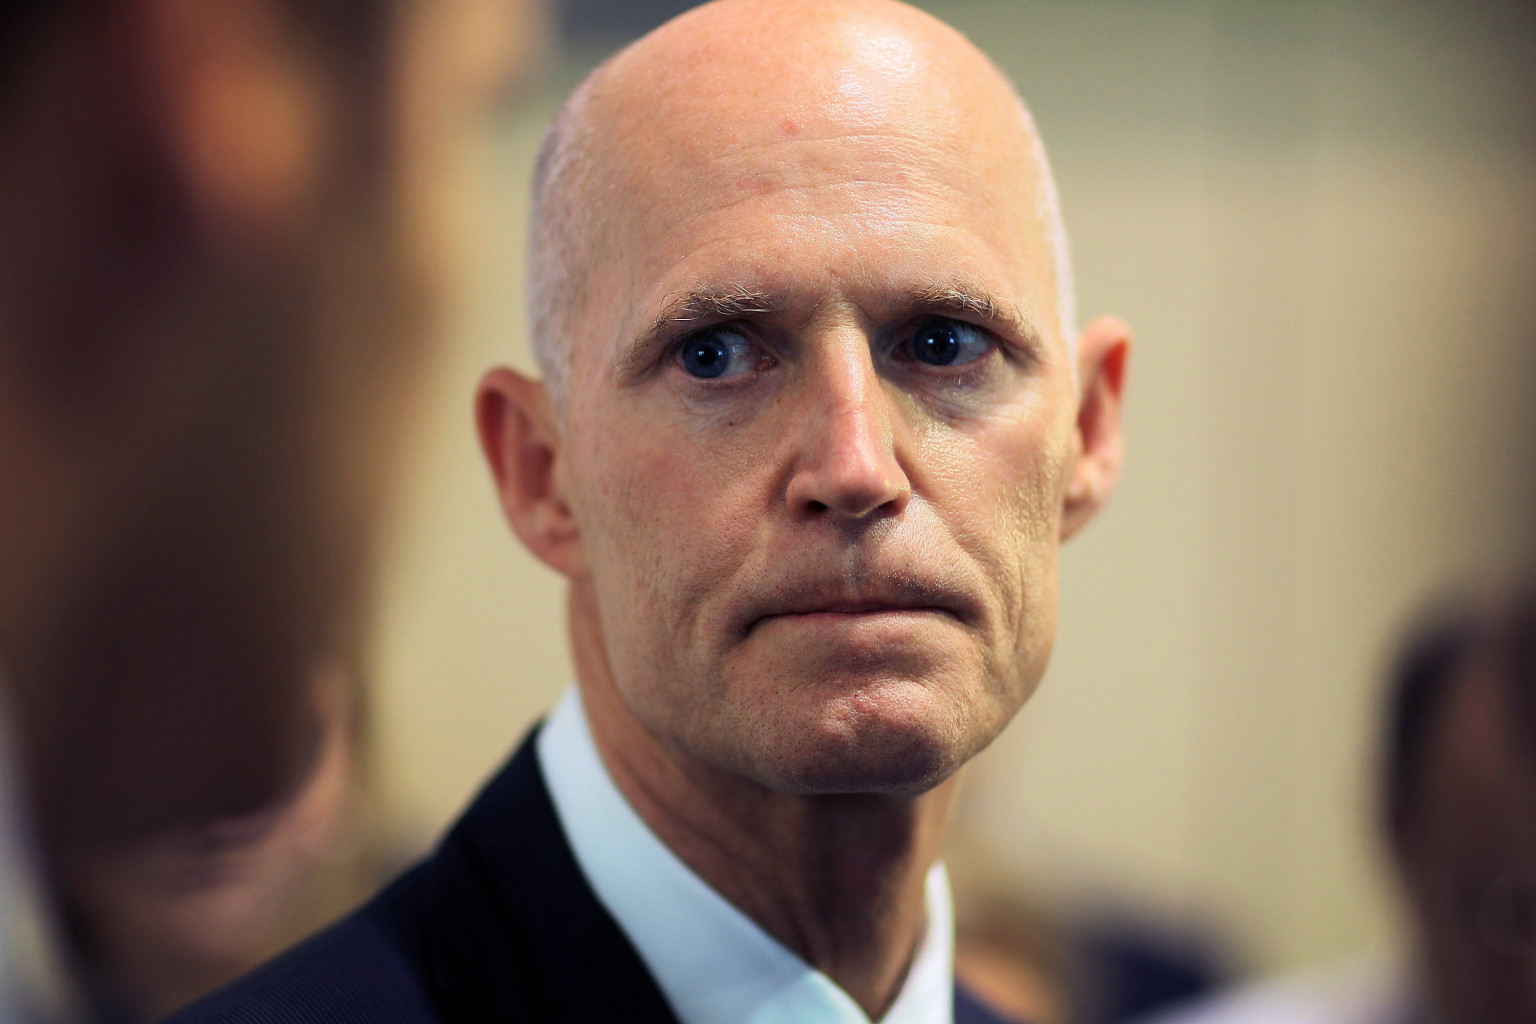 ... Rick Scott For Governor In rick scott re-election ... - o-RICK-SCOTT-FLORIDA-GOVERNOR-facebook